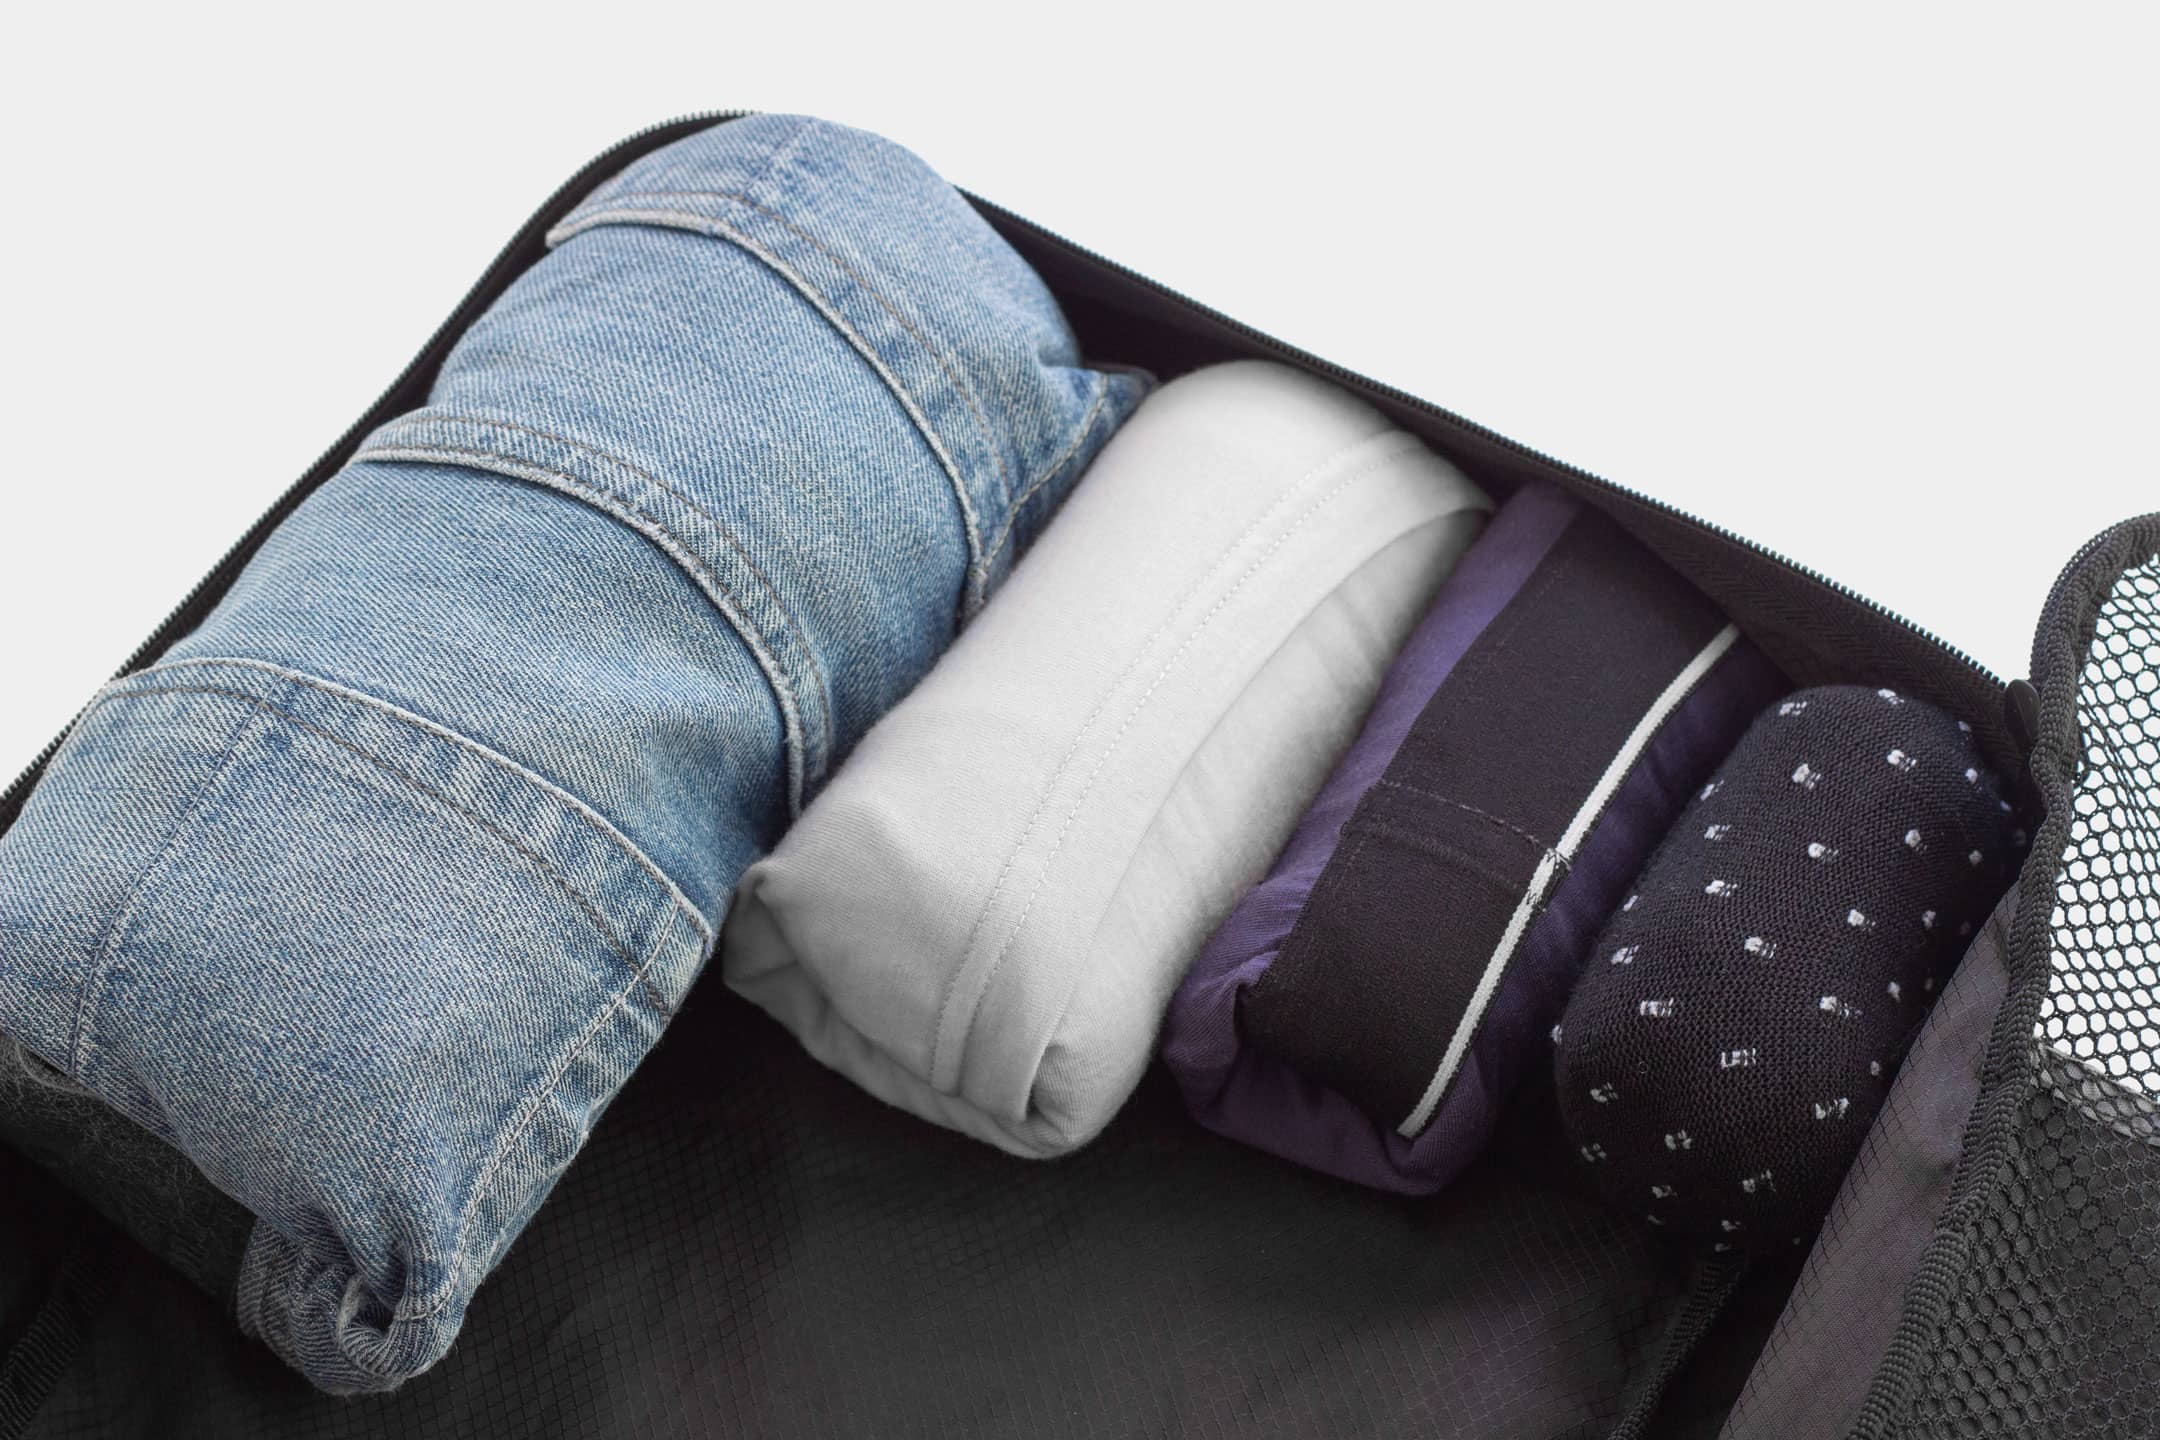 Rolled clothes nestled in a packing cube